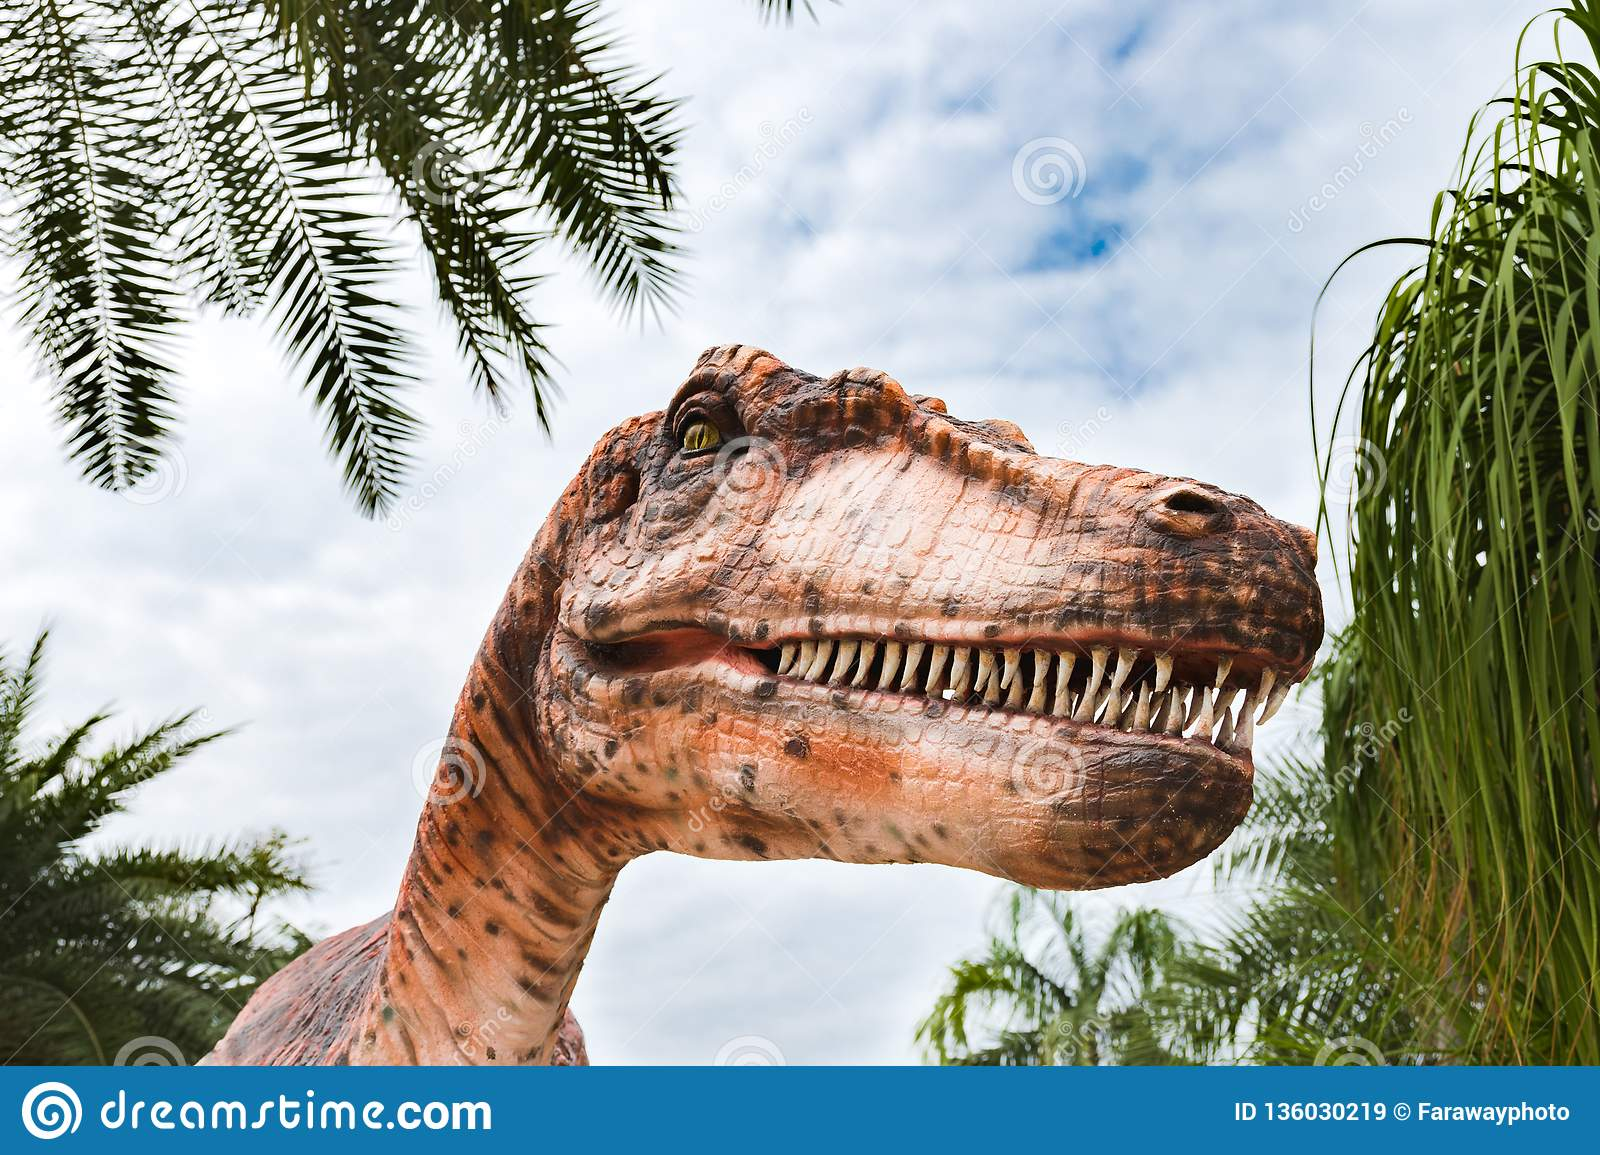 Close up on a realistic statue of Tyrannosaurus in dinosaur park